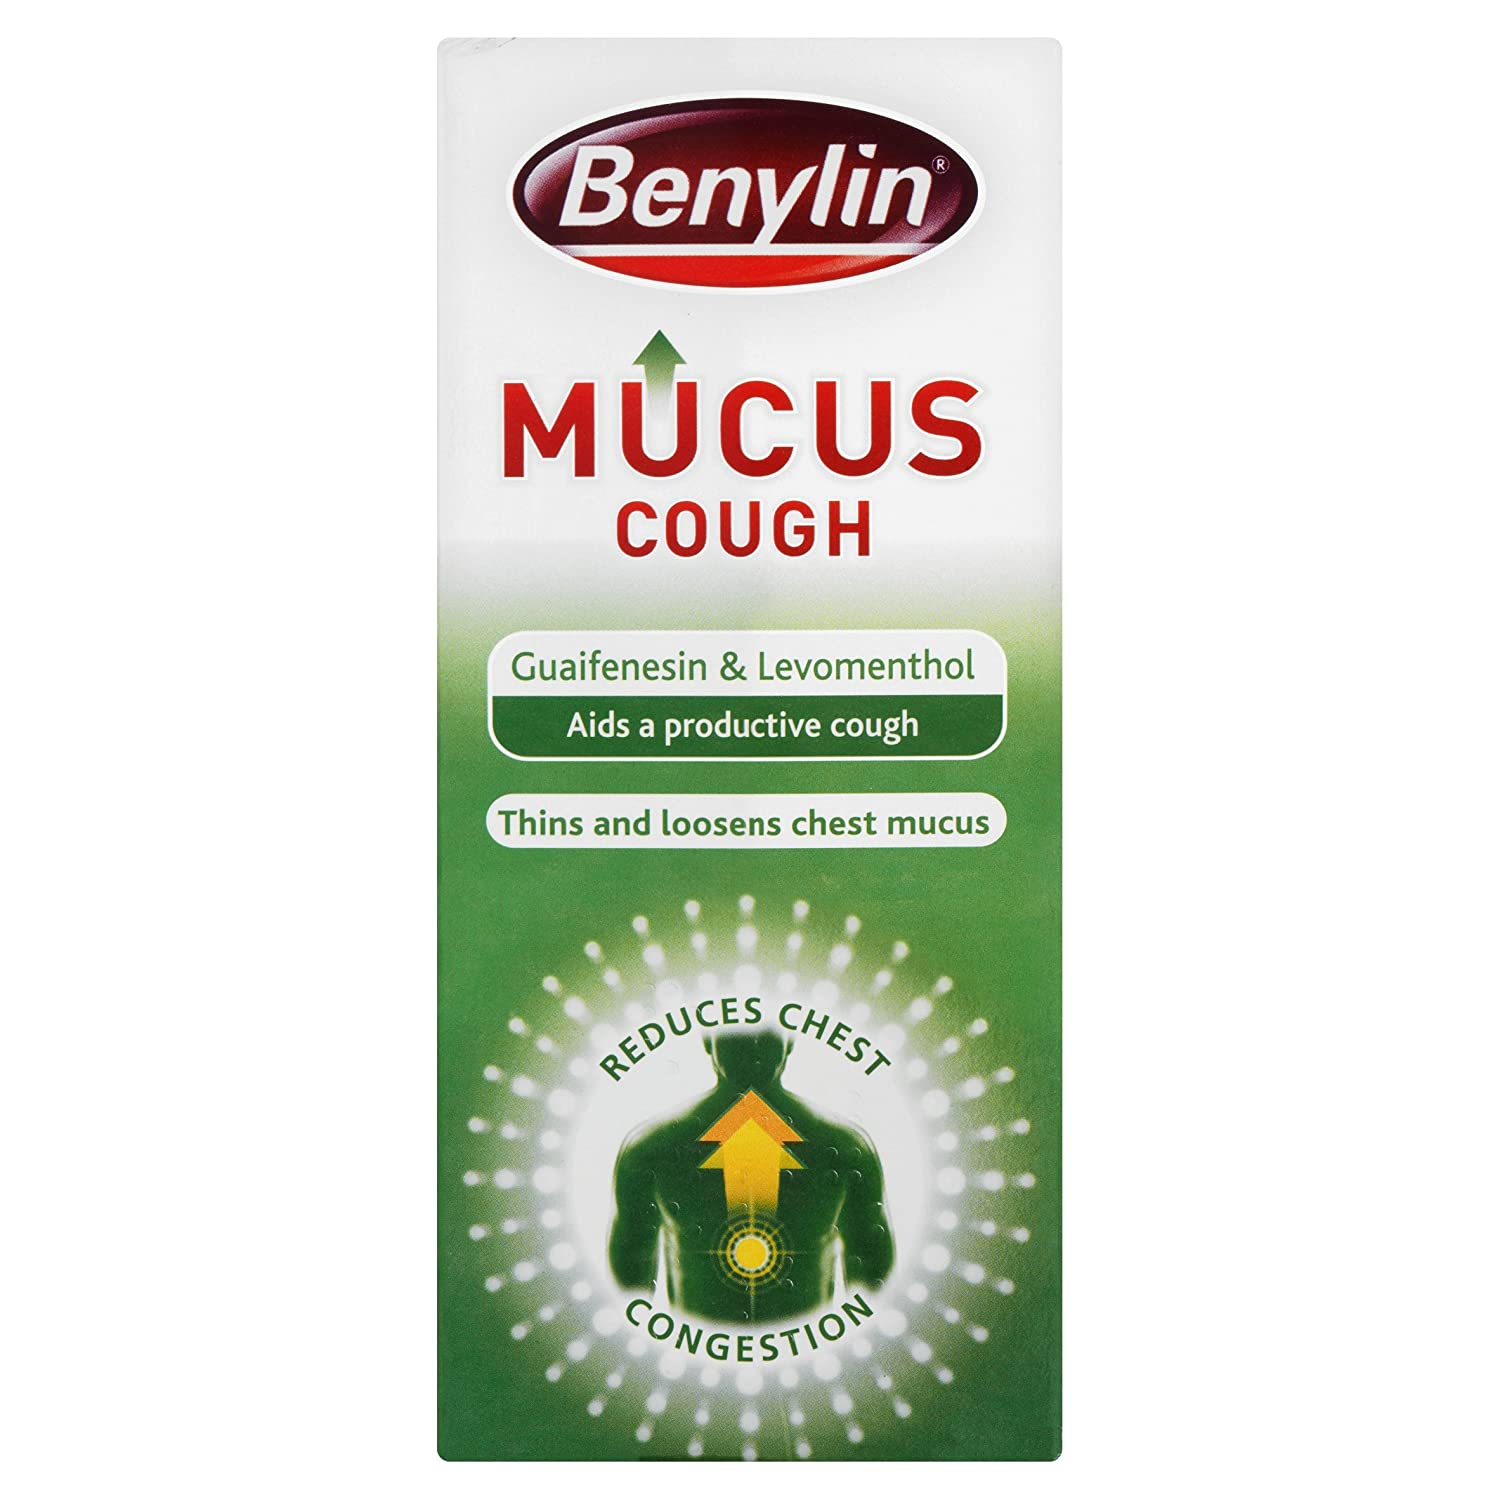 Treatment of cough with phlegm